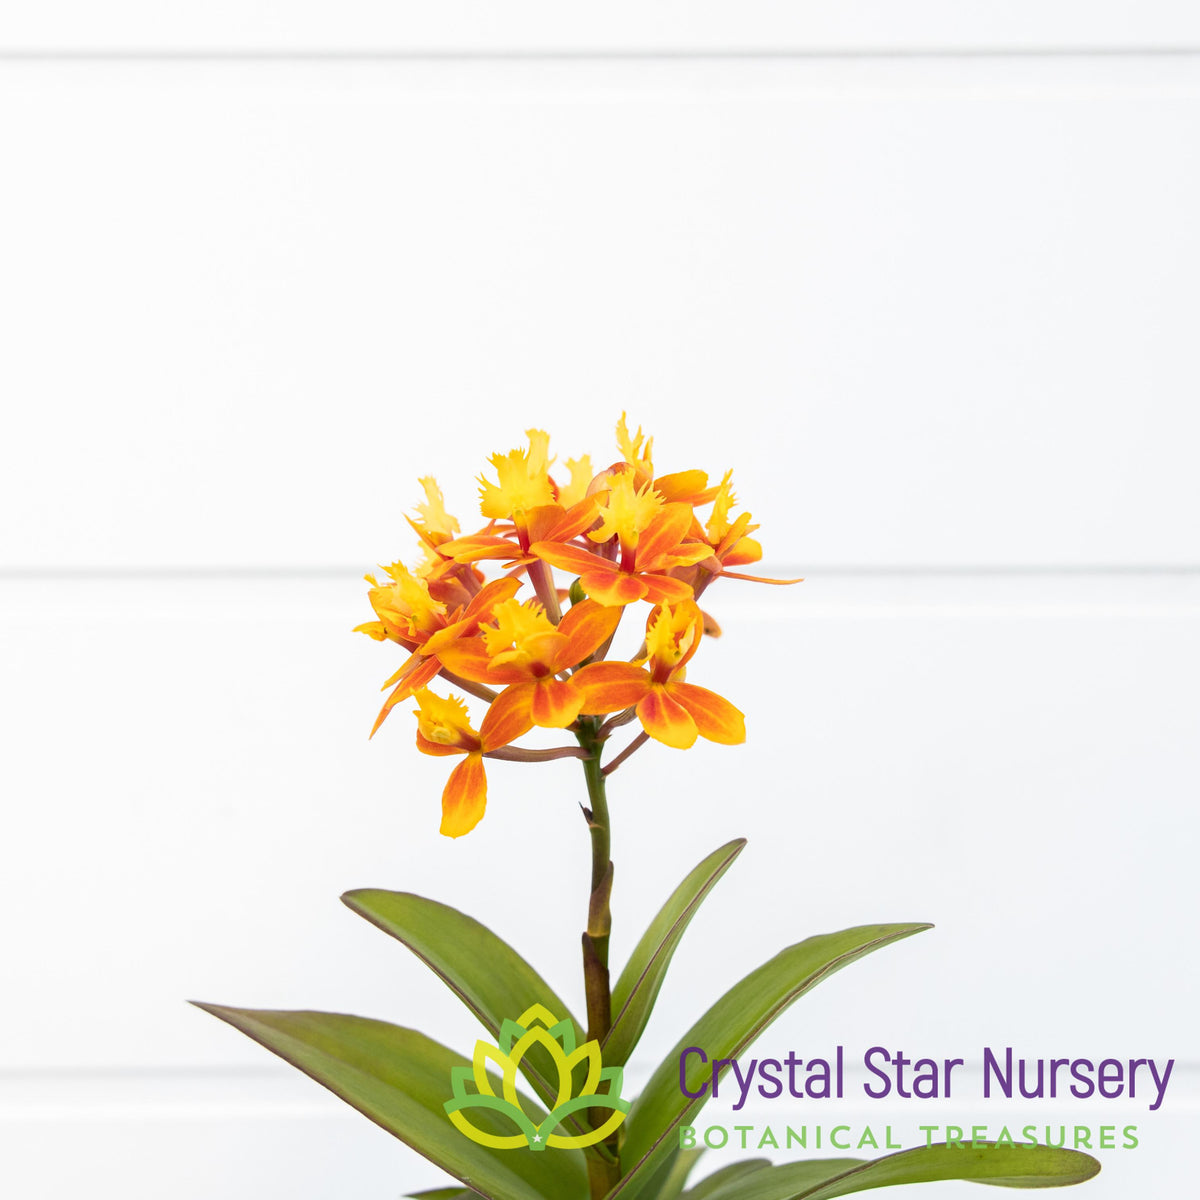 Epidendrum Fantasy Valley x Liberty Valley